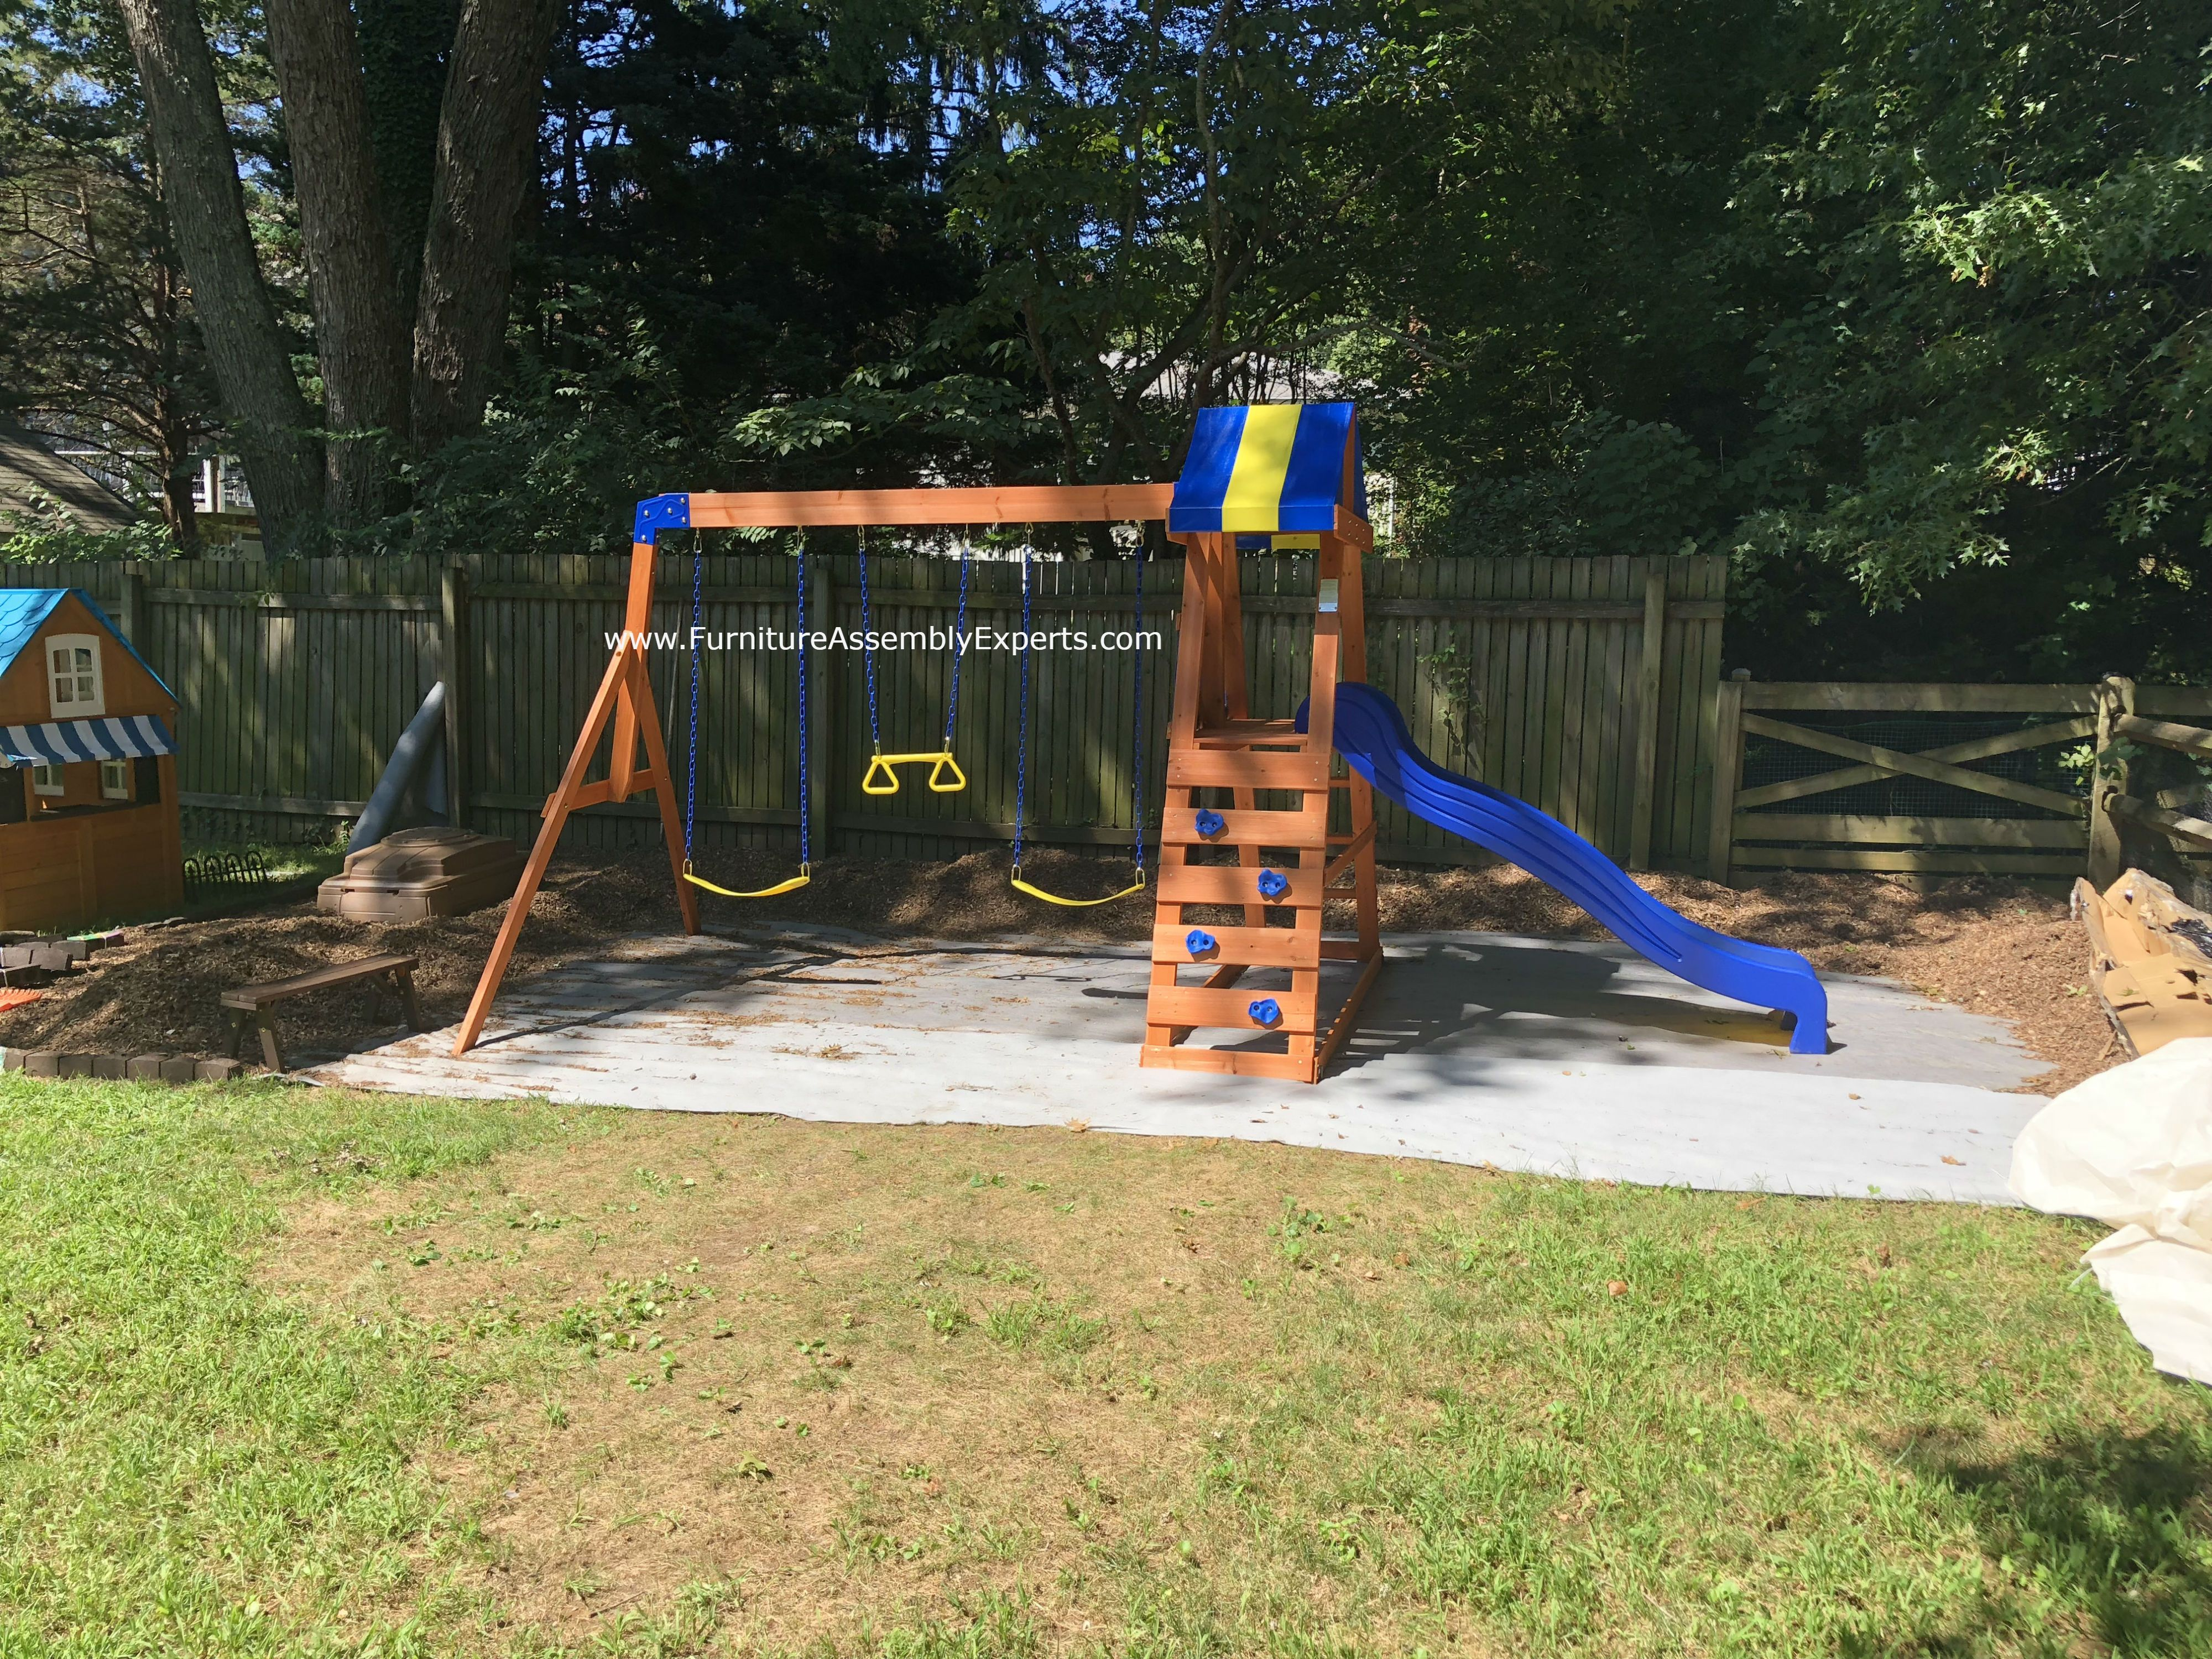 Swing Set Moving And Installation Completed For A Customer In Glen